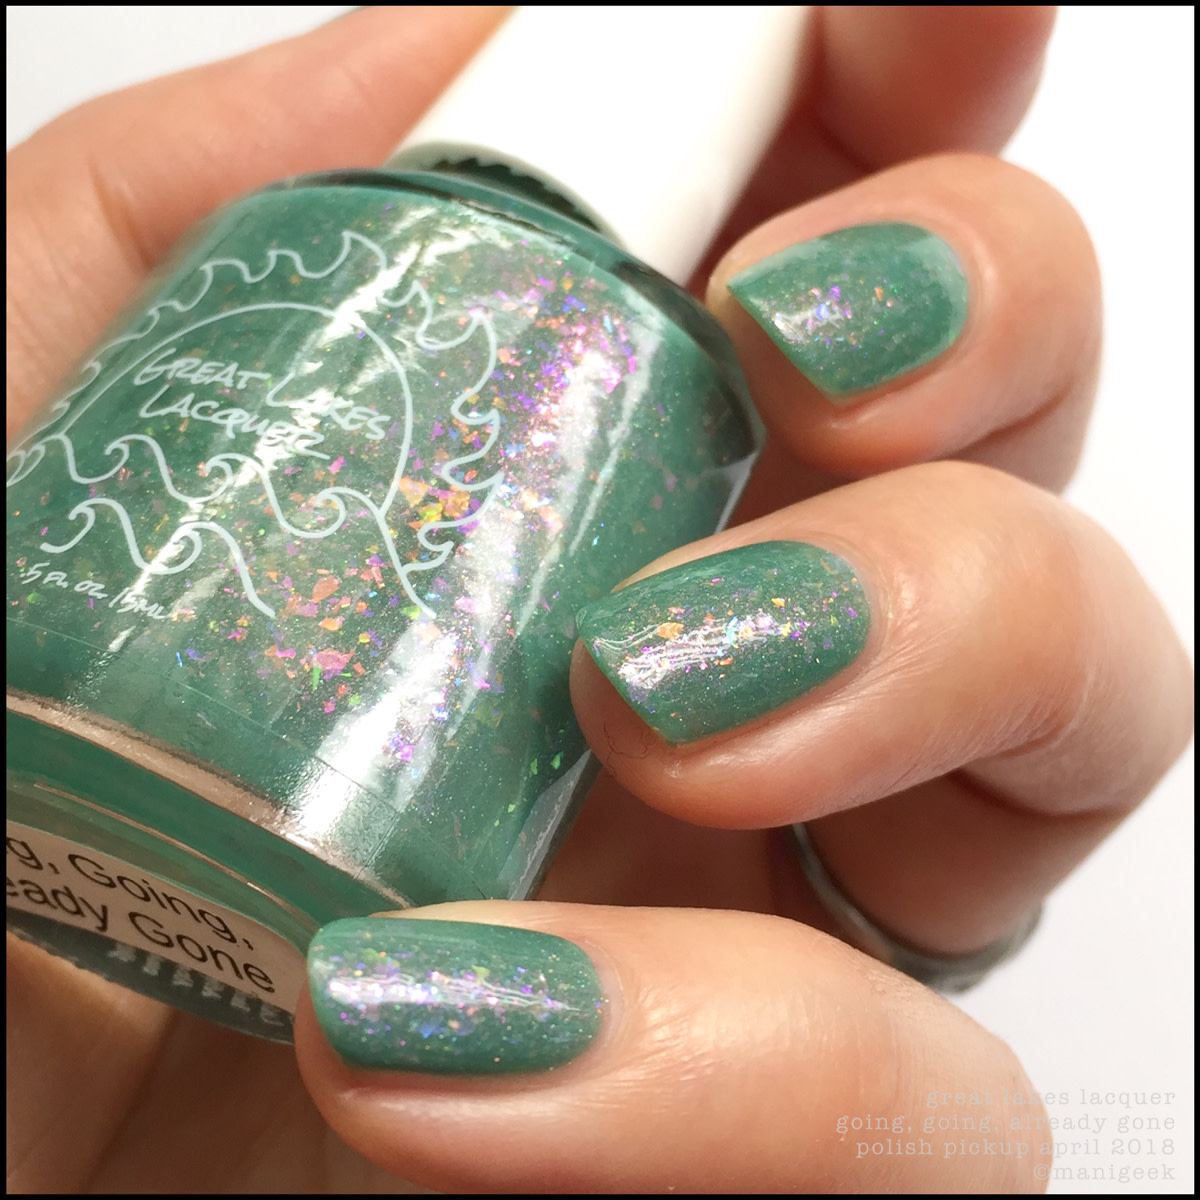 Great Lakes Lacquer Polish Pickup April 2018 Going Going Already Gone _ 3